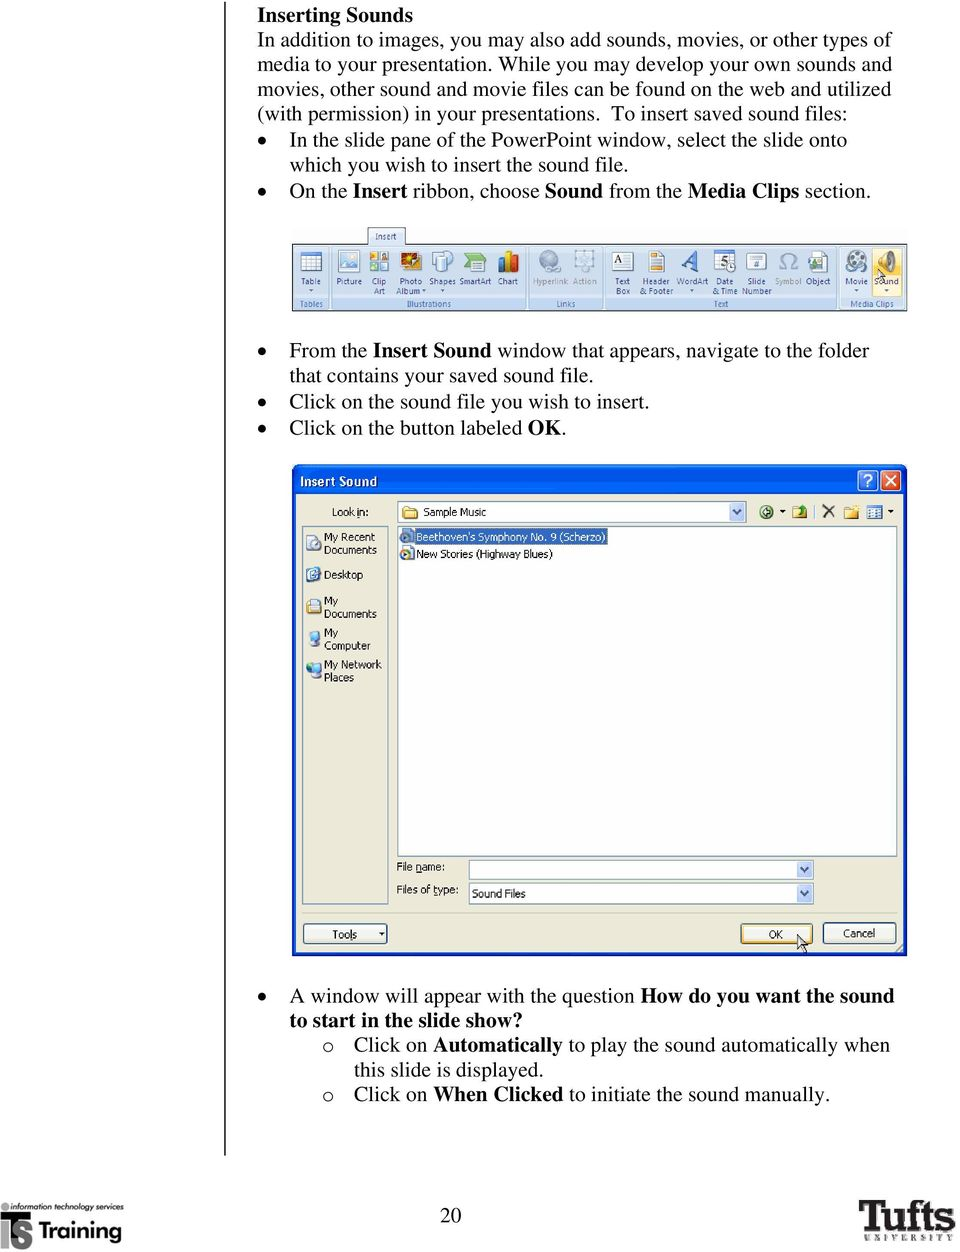 To insert saved sound files: In the slide pane of the PowerPoint window, select the slide onto which you wish to insert the sound file. On the Insert ribbon, choose Sound from the Media Clips section.